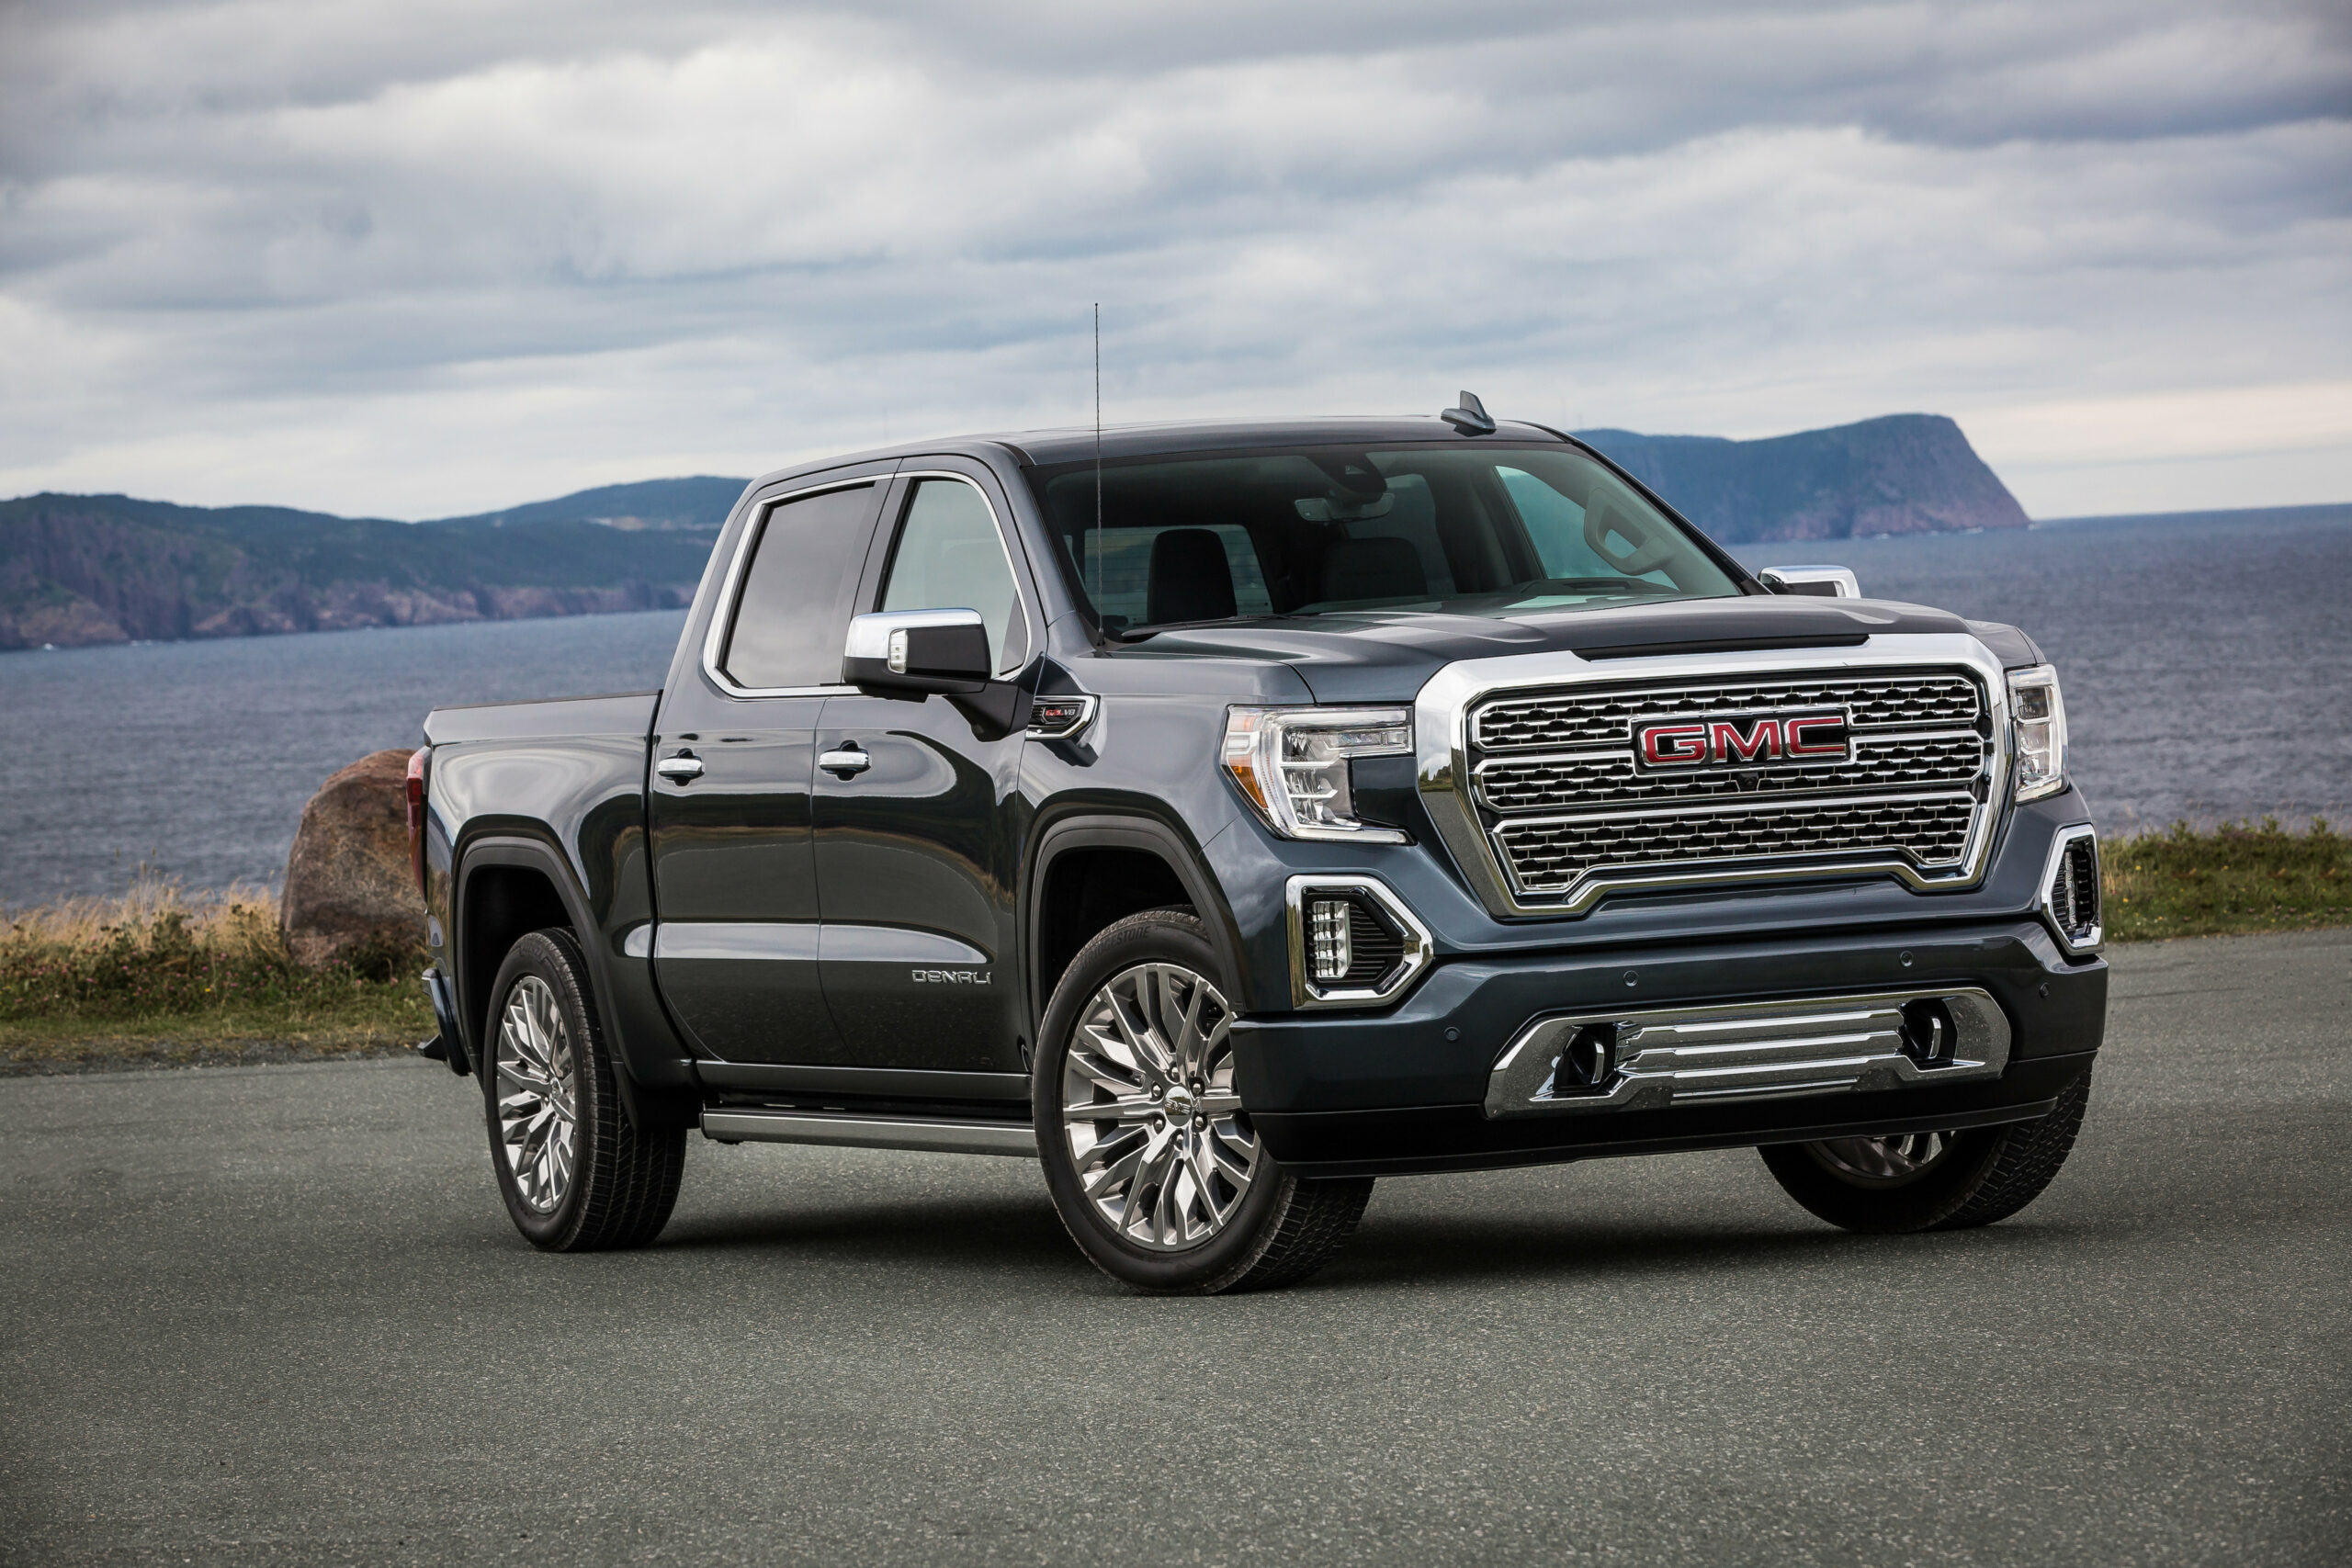 GMC Pressroom - Middle East - 7 Sierra Denali - 2020 gmc wheels